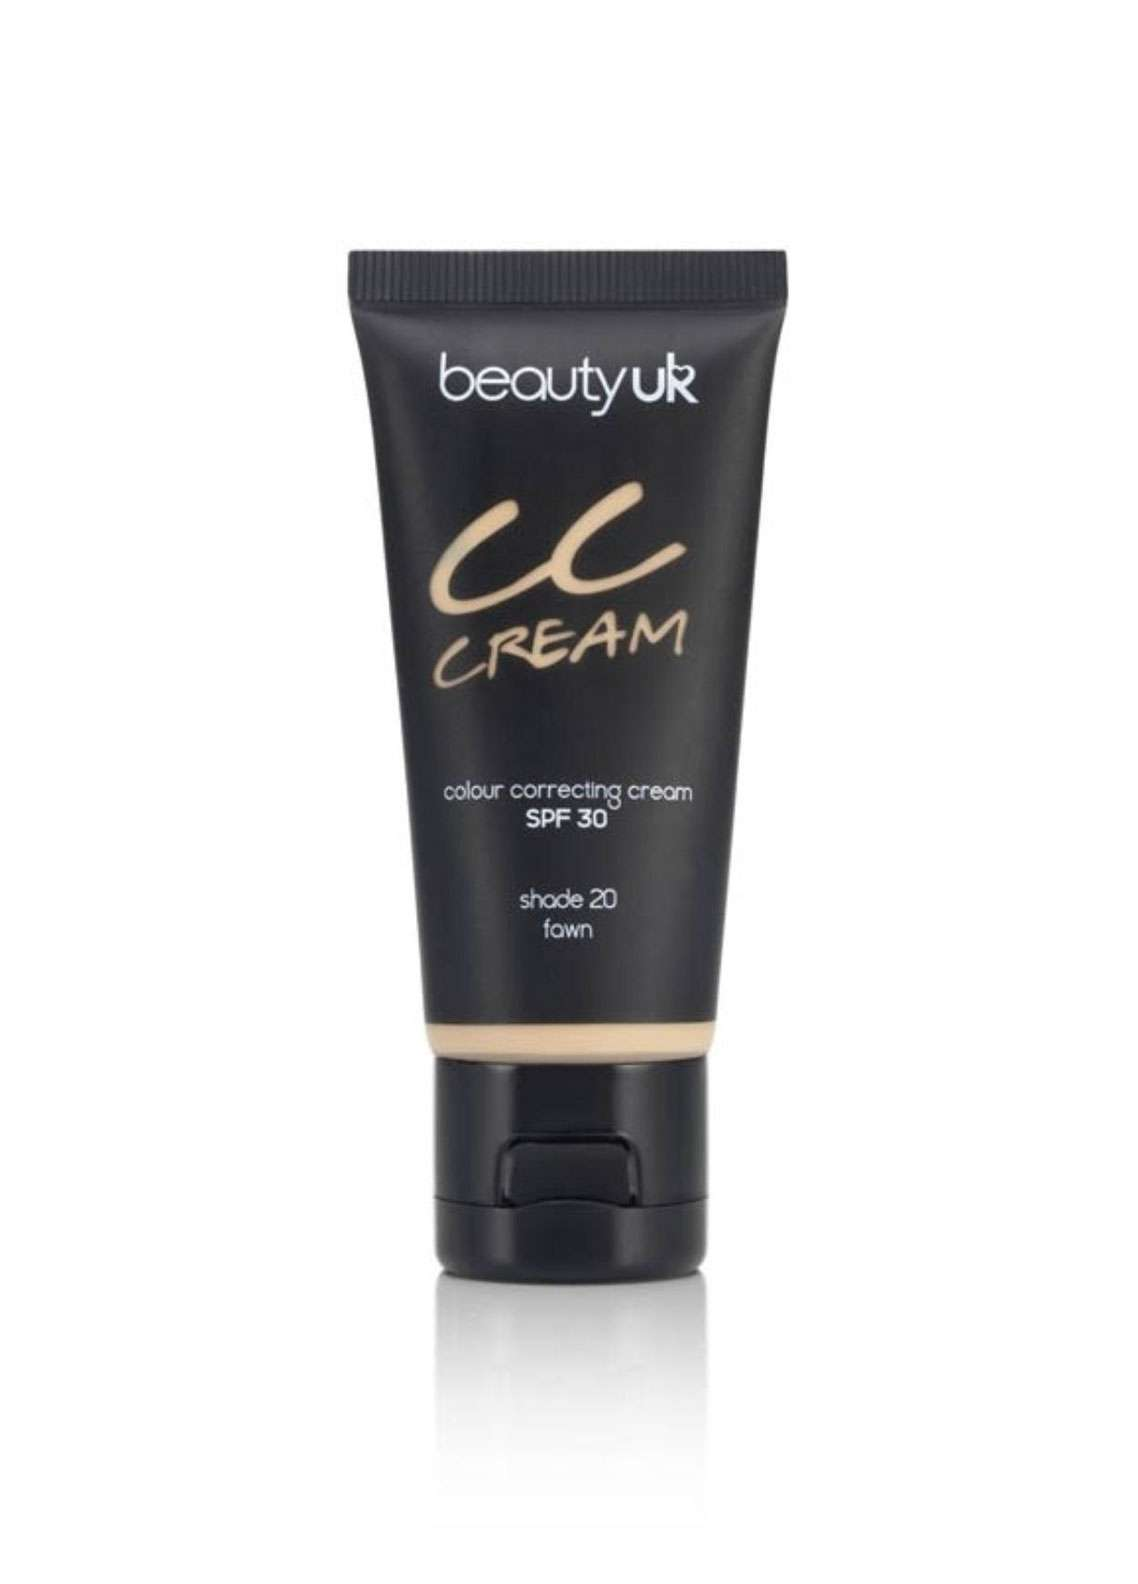 Beauty UK CC Cream - 20 Fawn